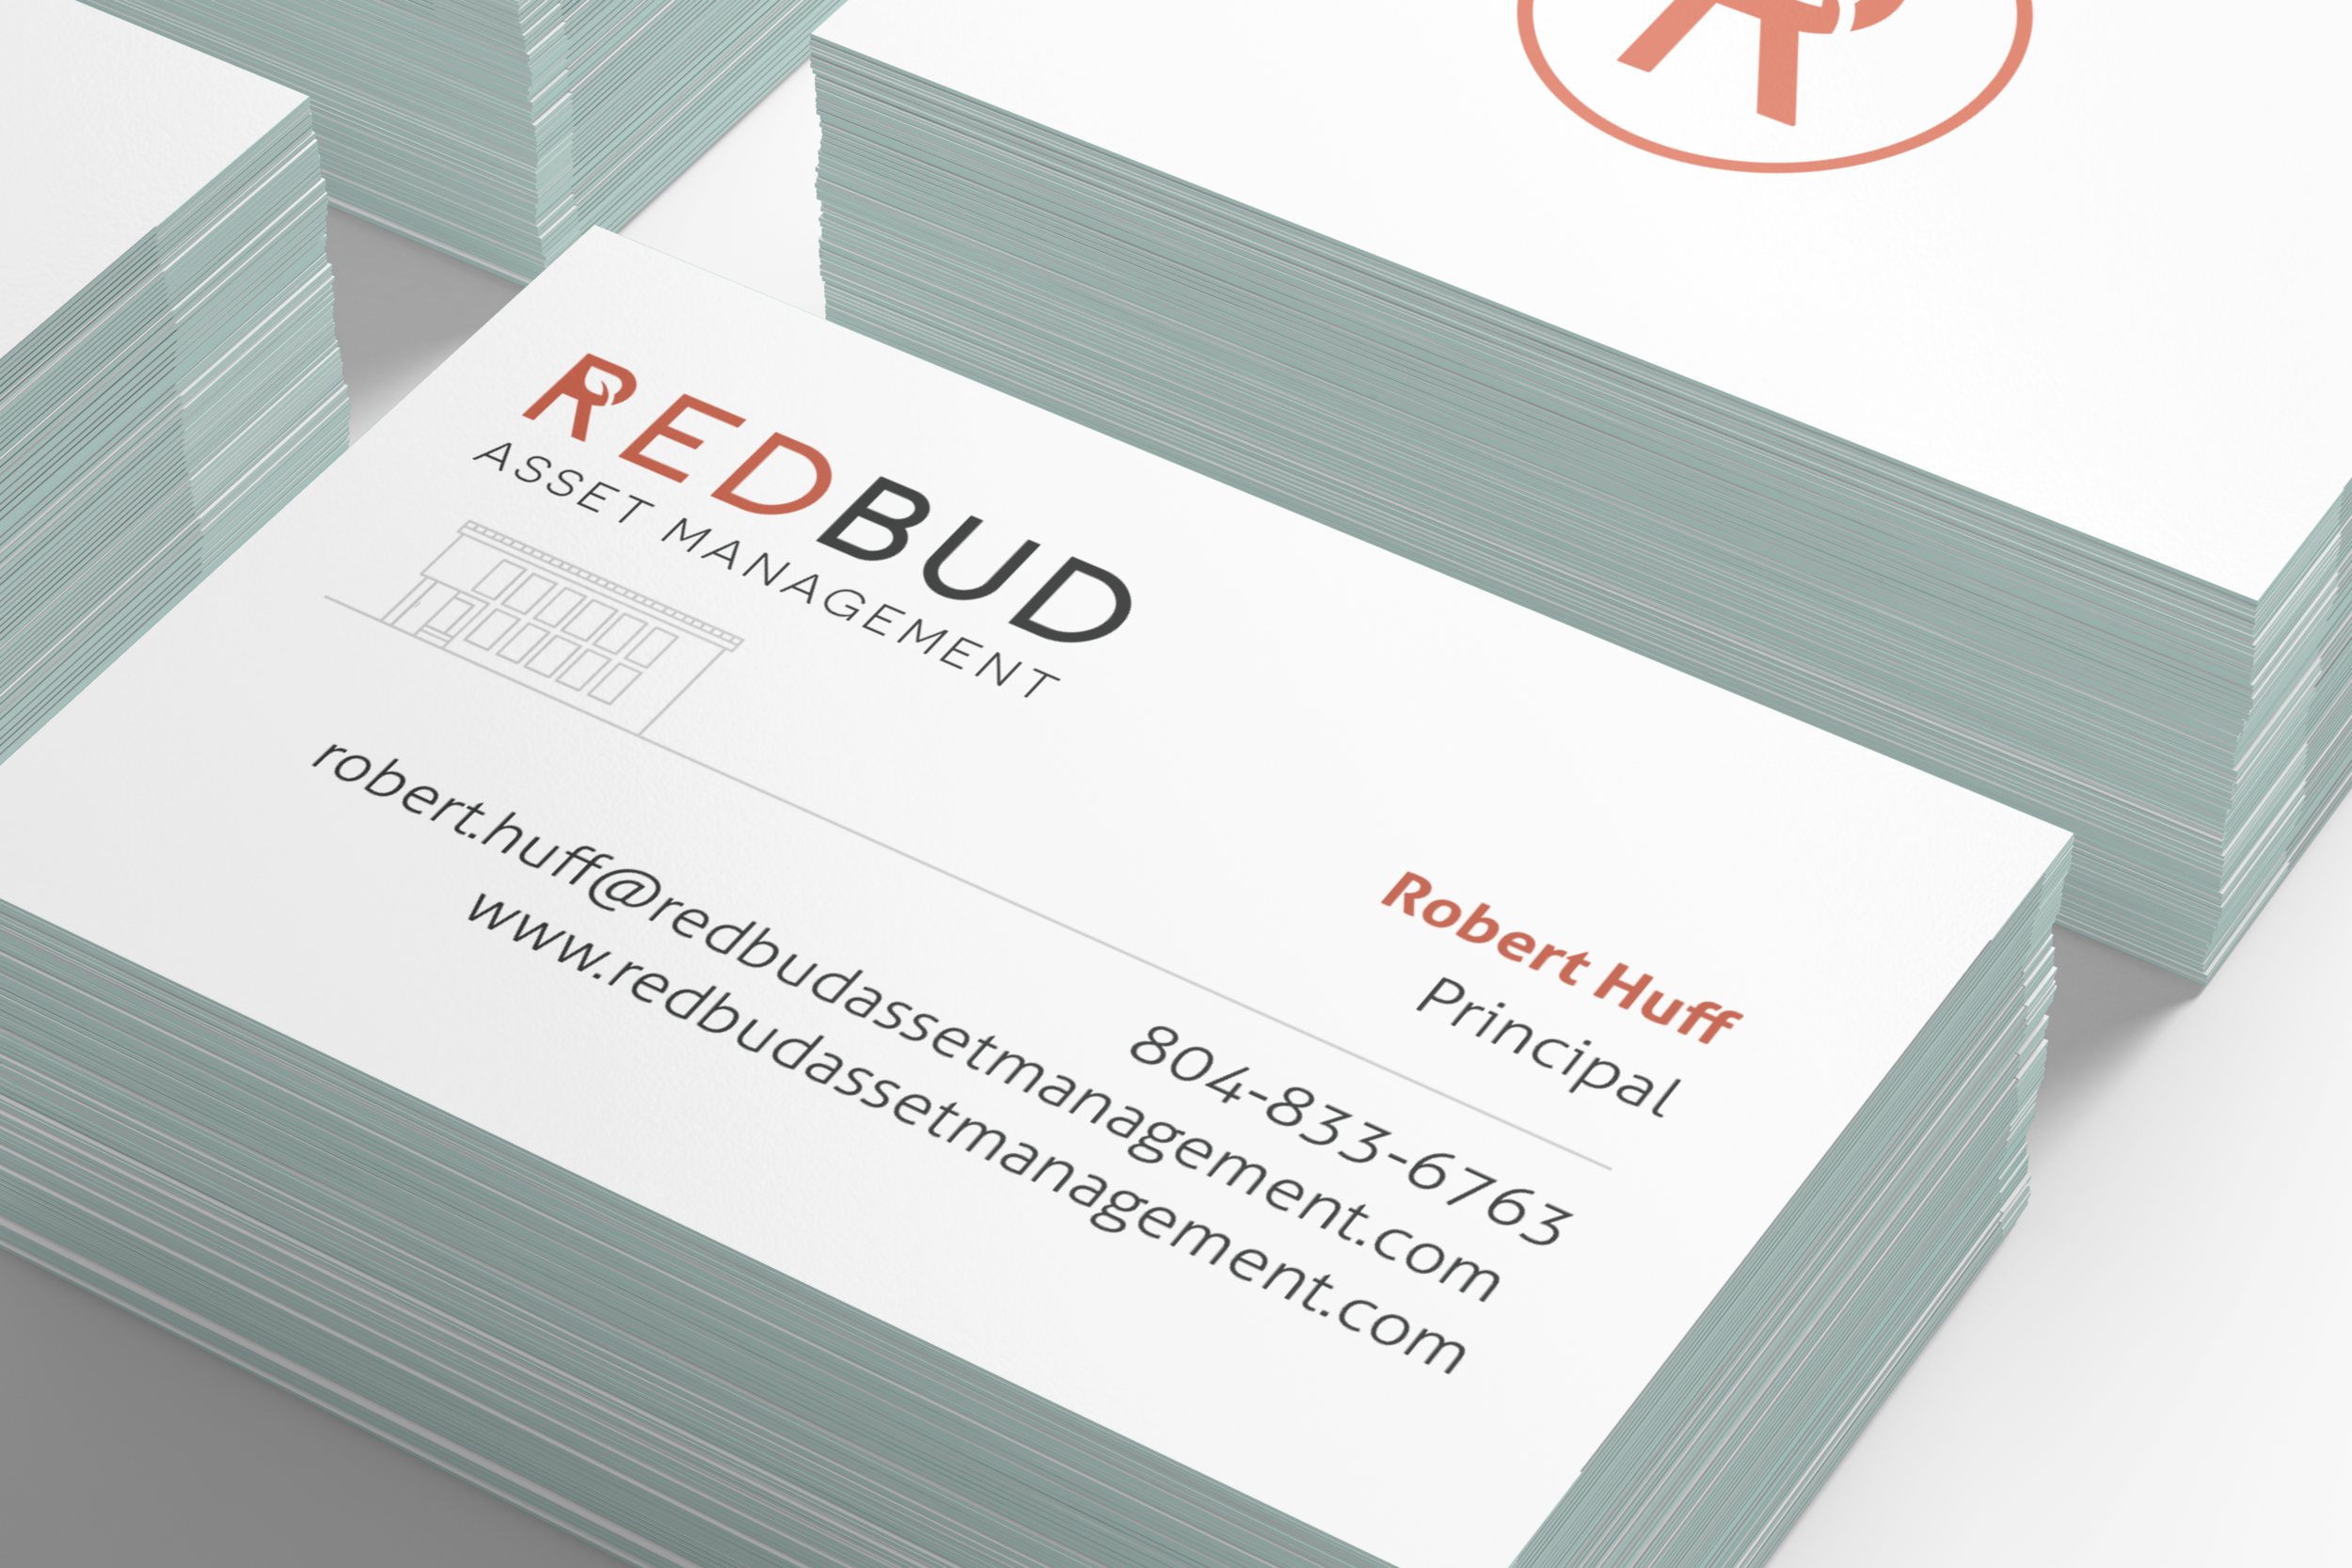 RedBud-business-card.png